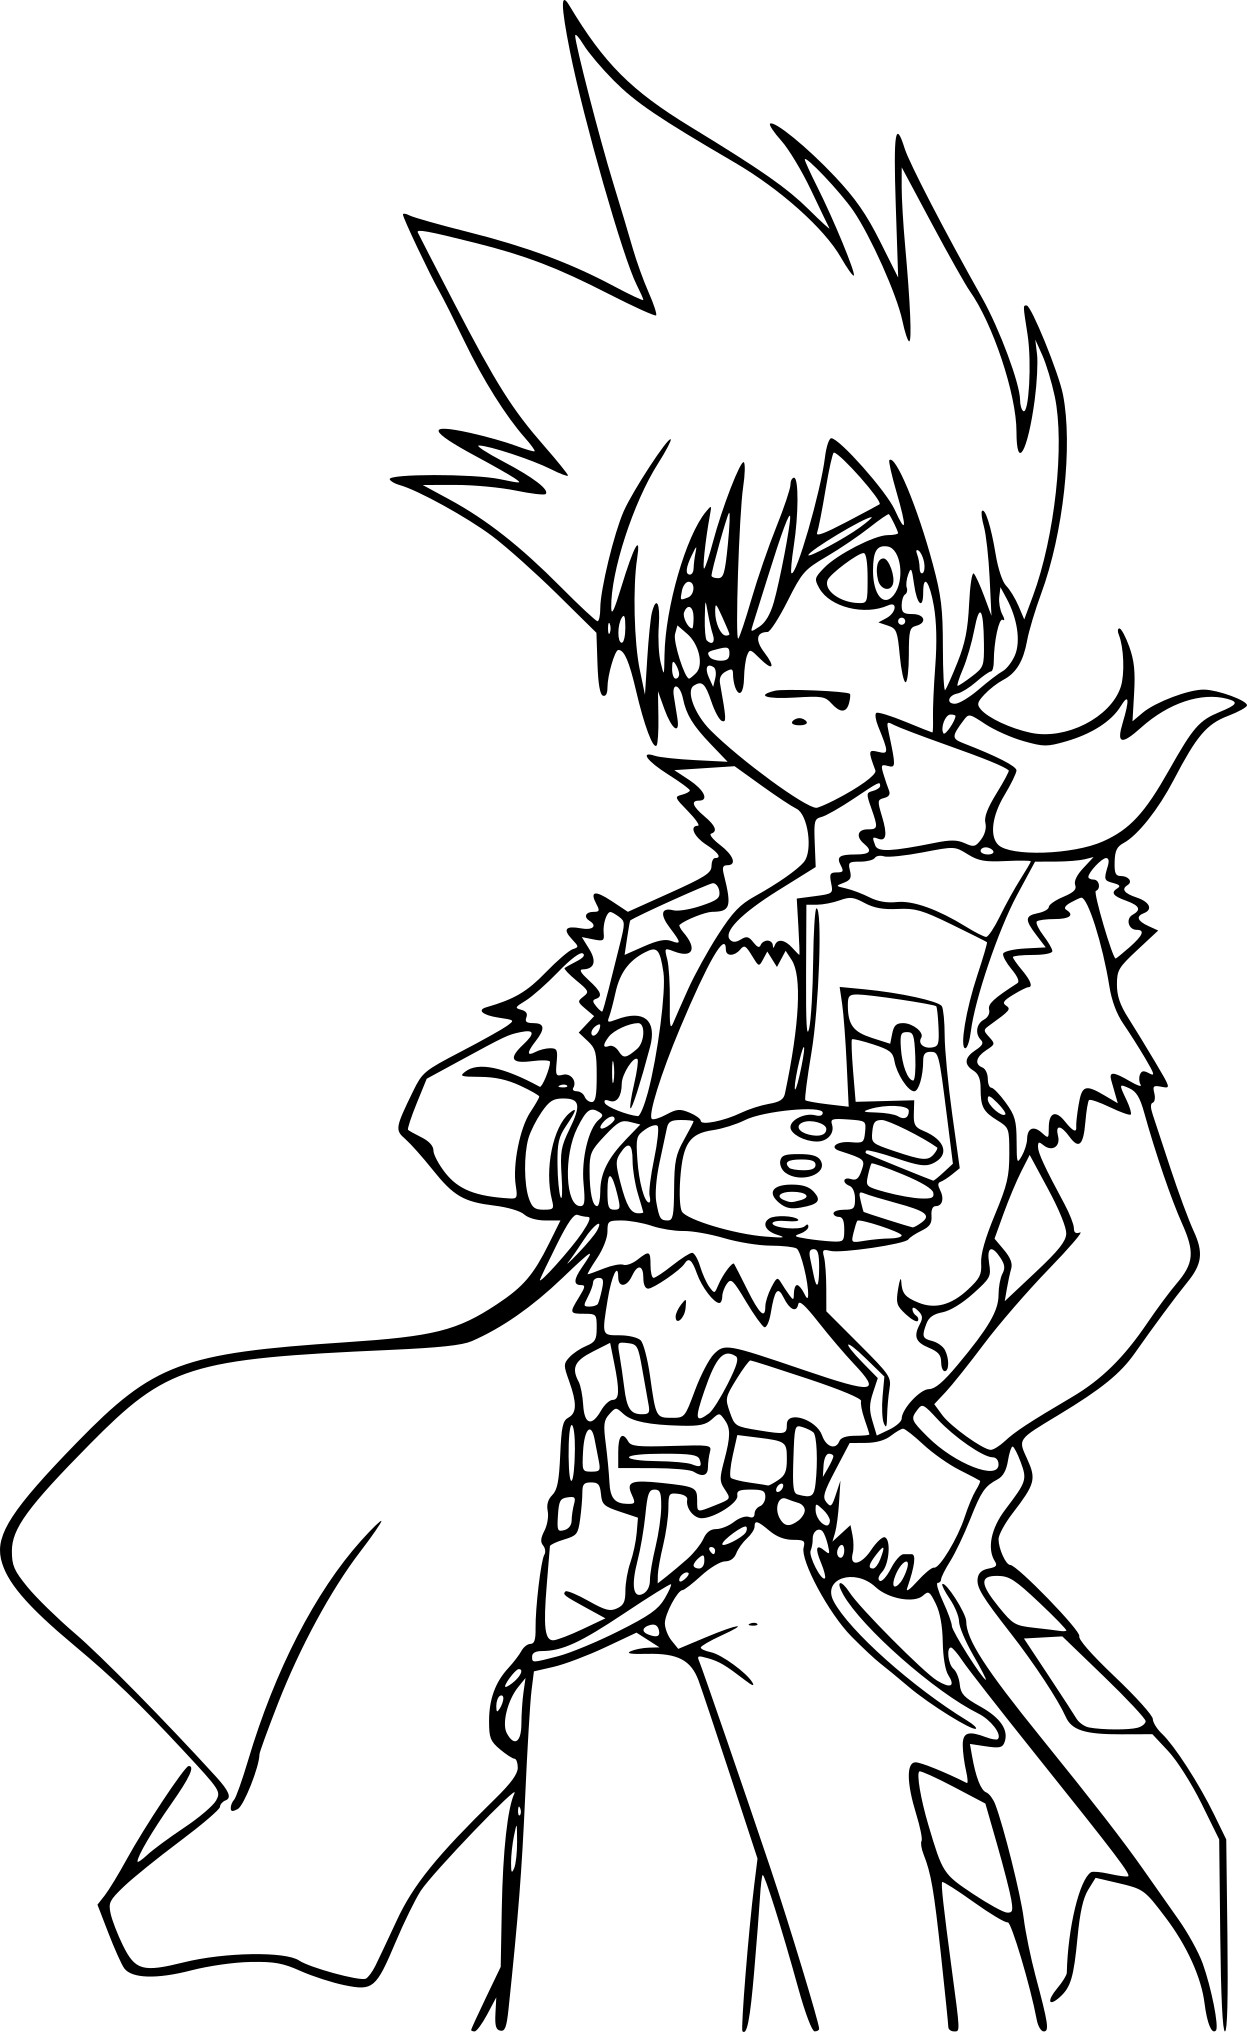 Coloriage beyblade kyoya imprimer sur coloriages info - Coloriage toupie beyblade ...